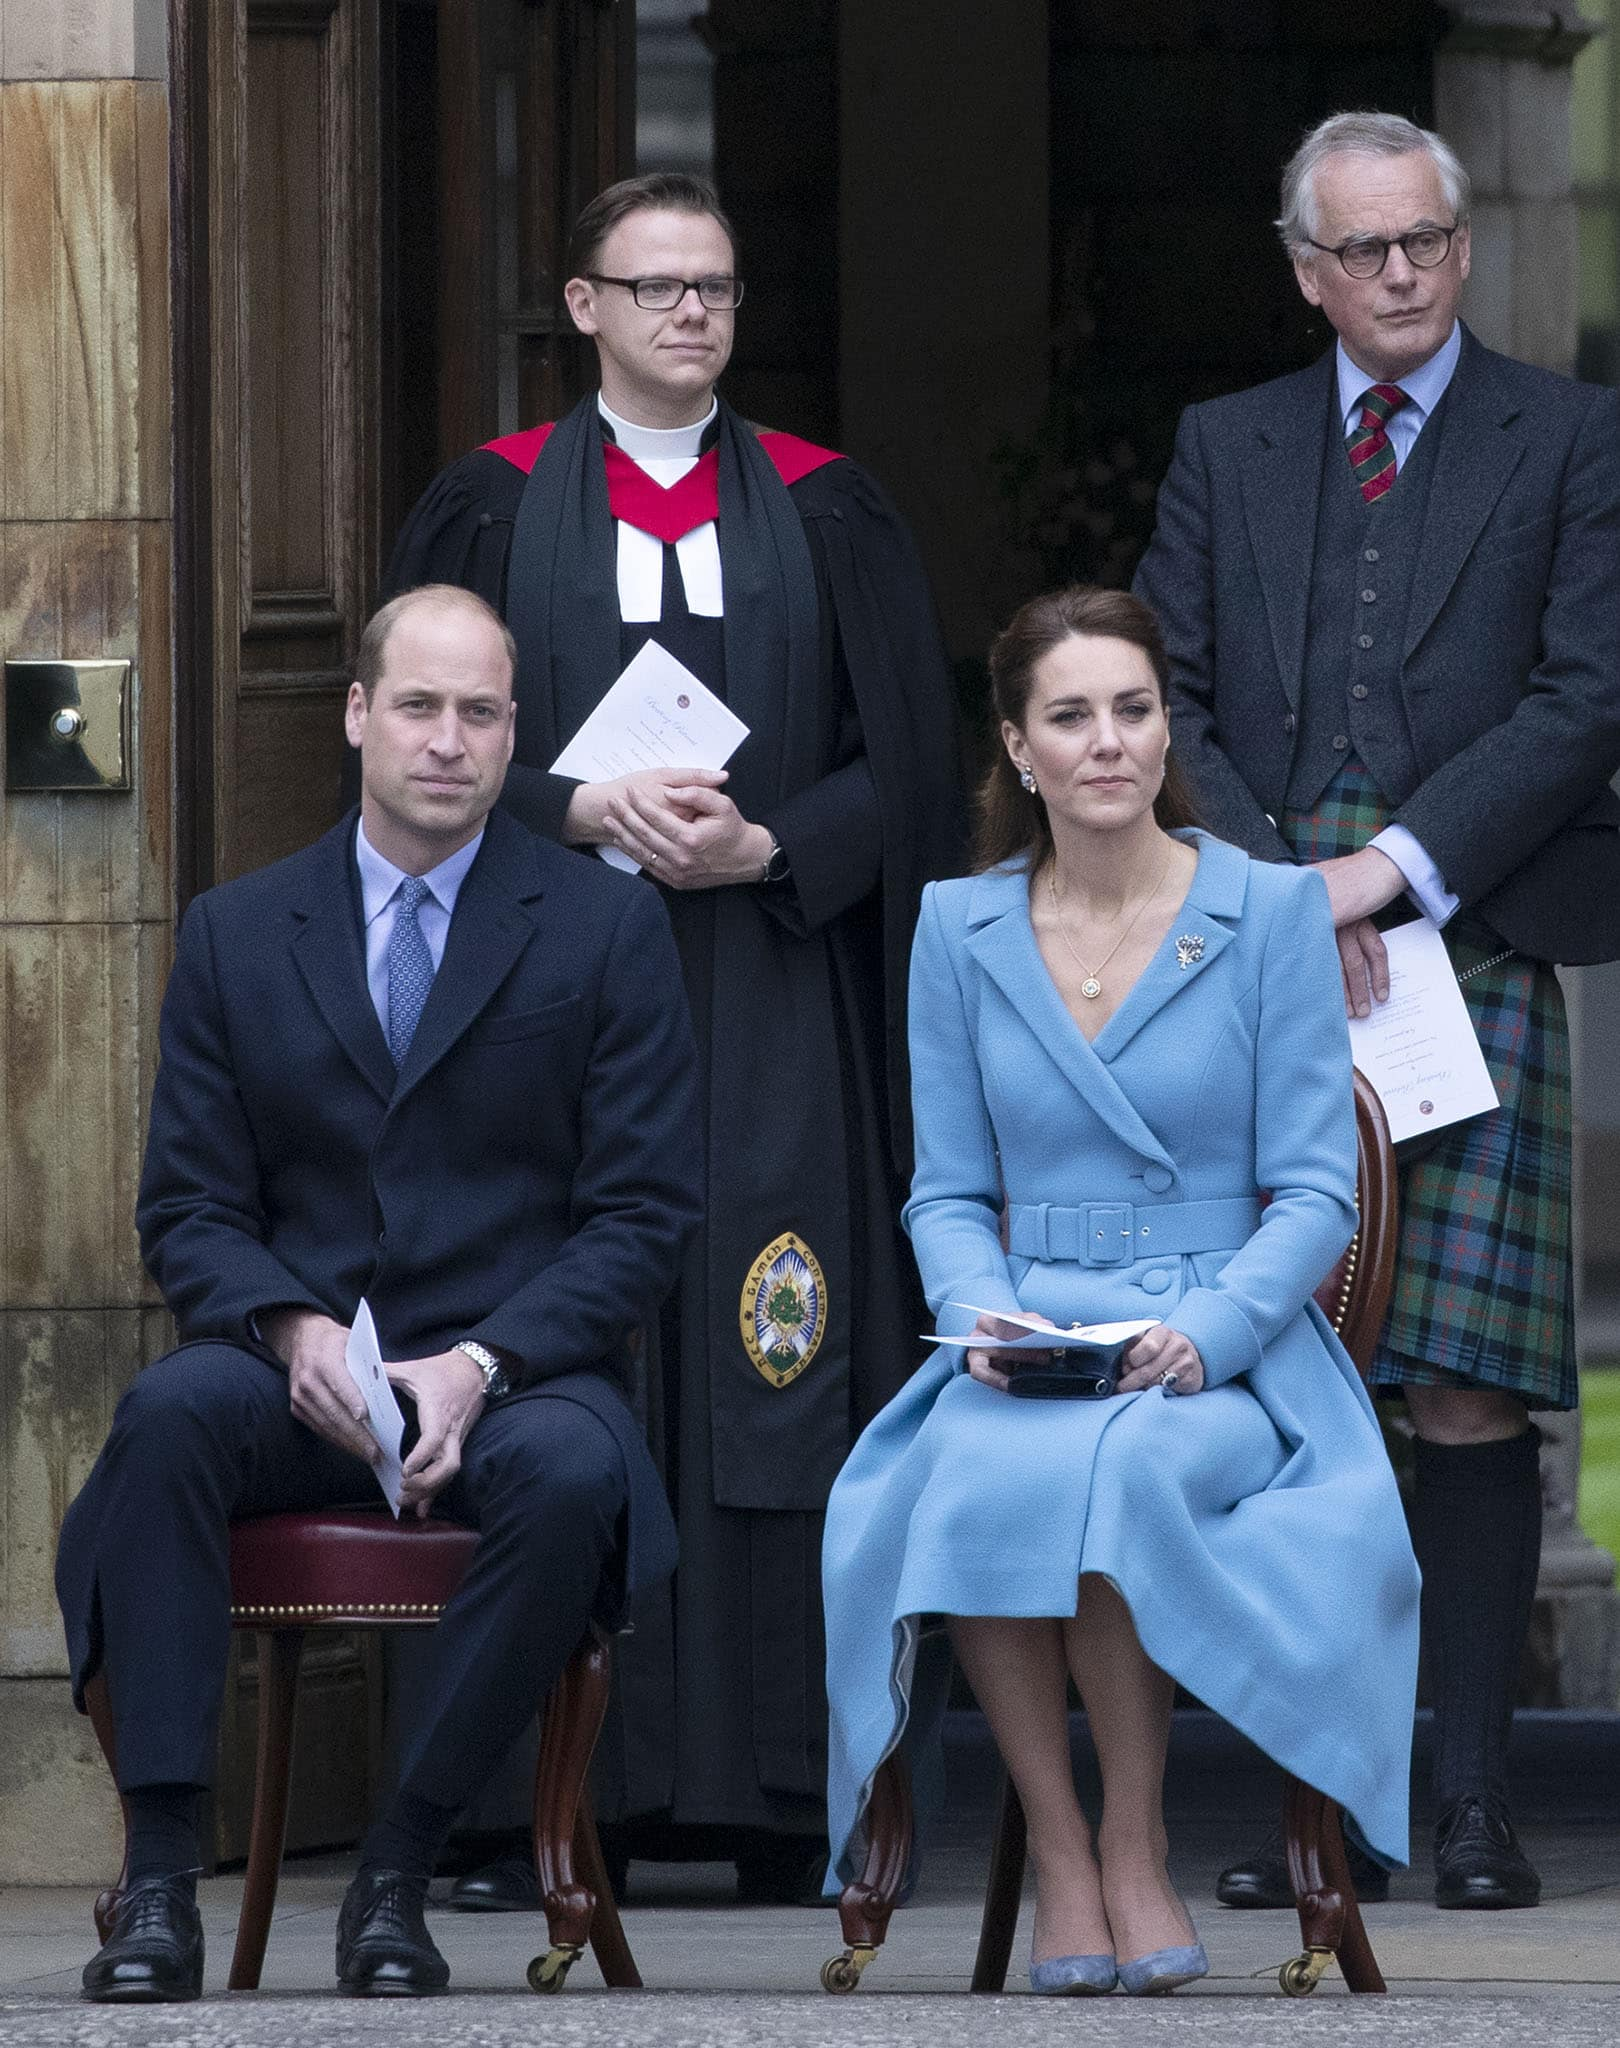 Prince William wears a navy blue suit with a printed necktie, while Kate Middleton opts for a light blue dress